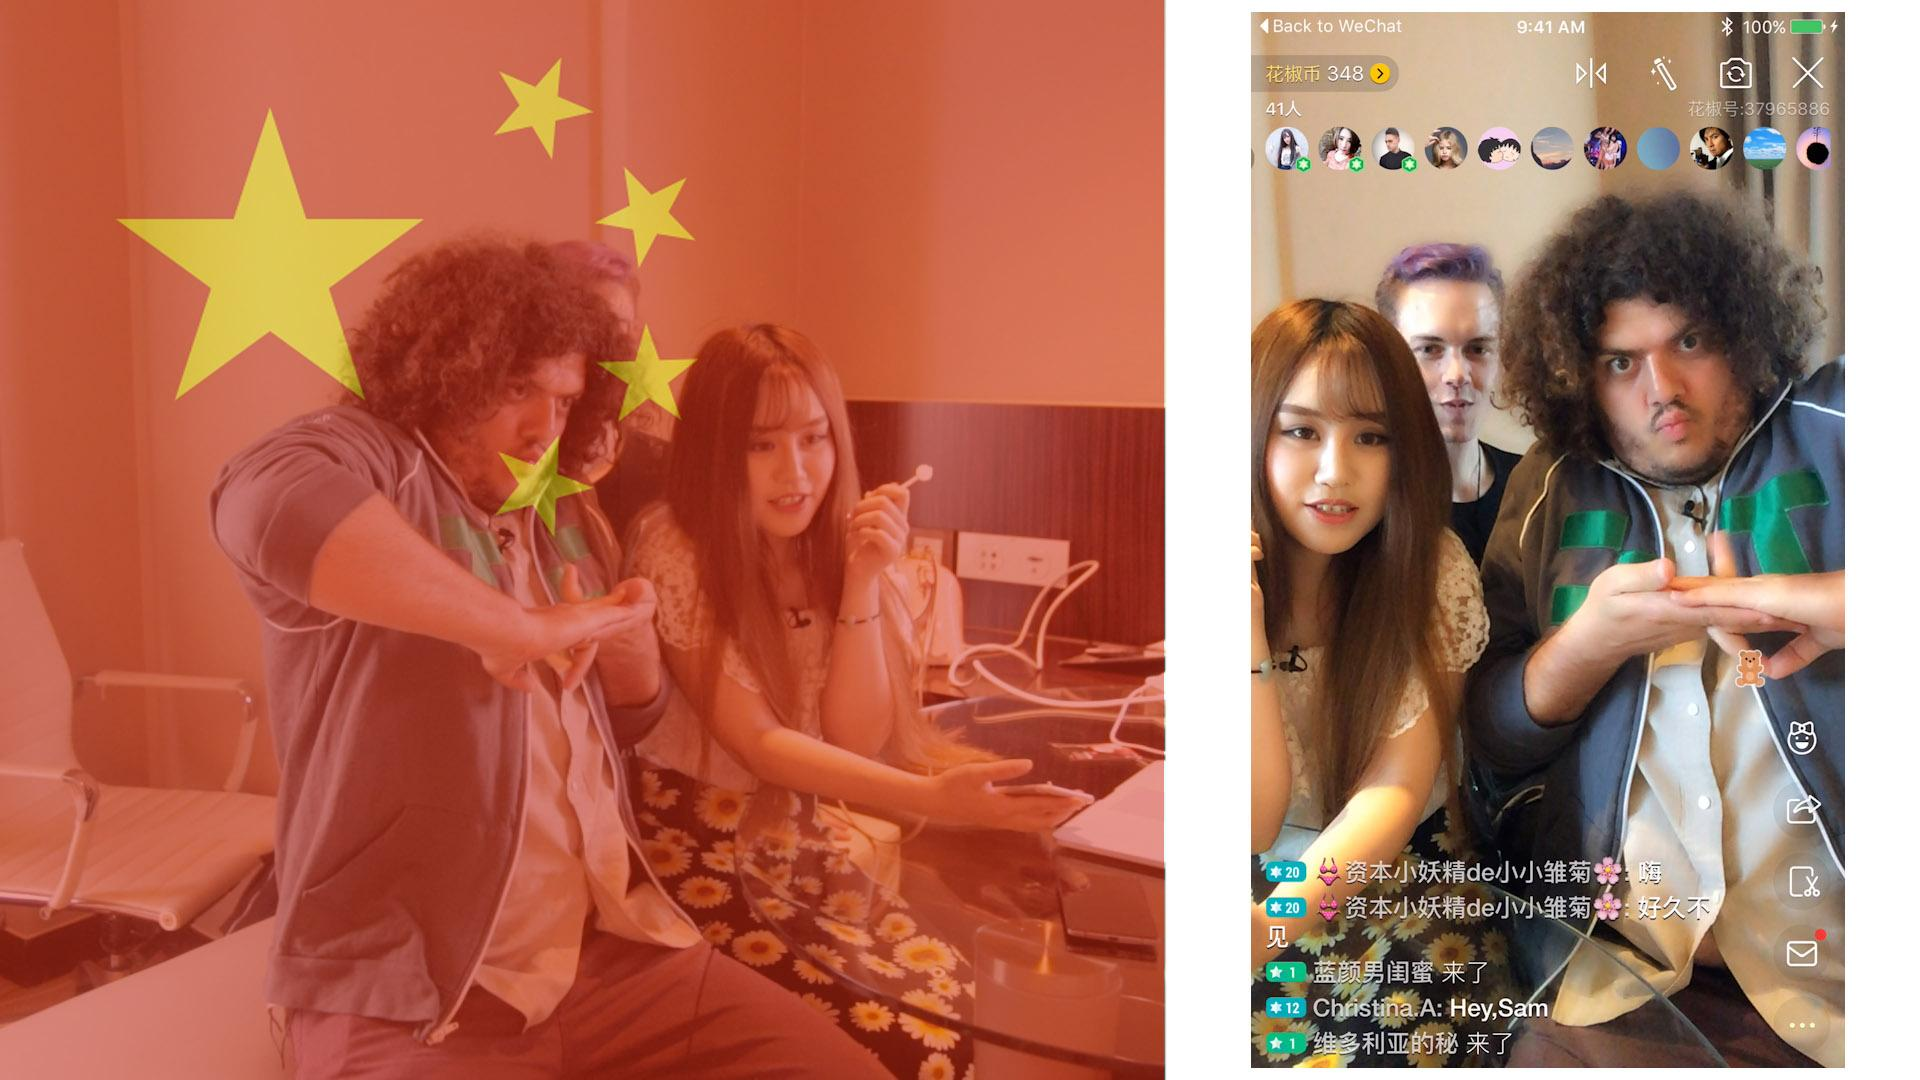 Live Streaming App Phenomenon in China